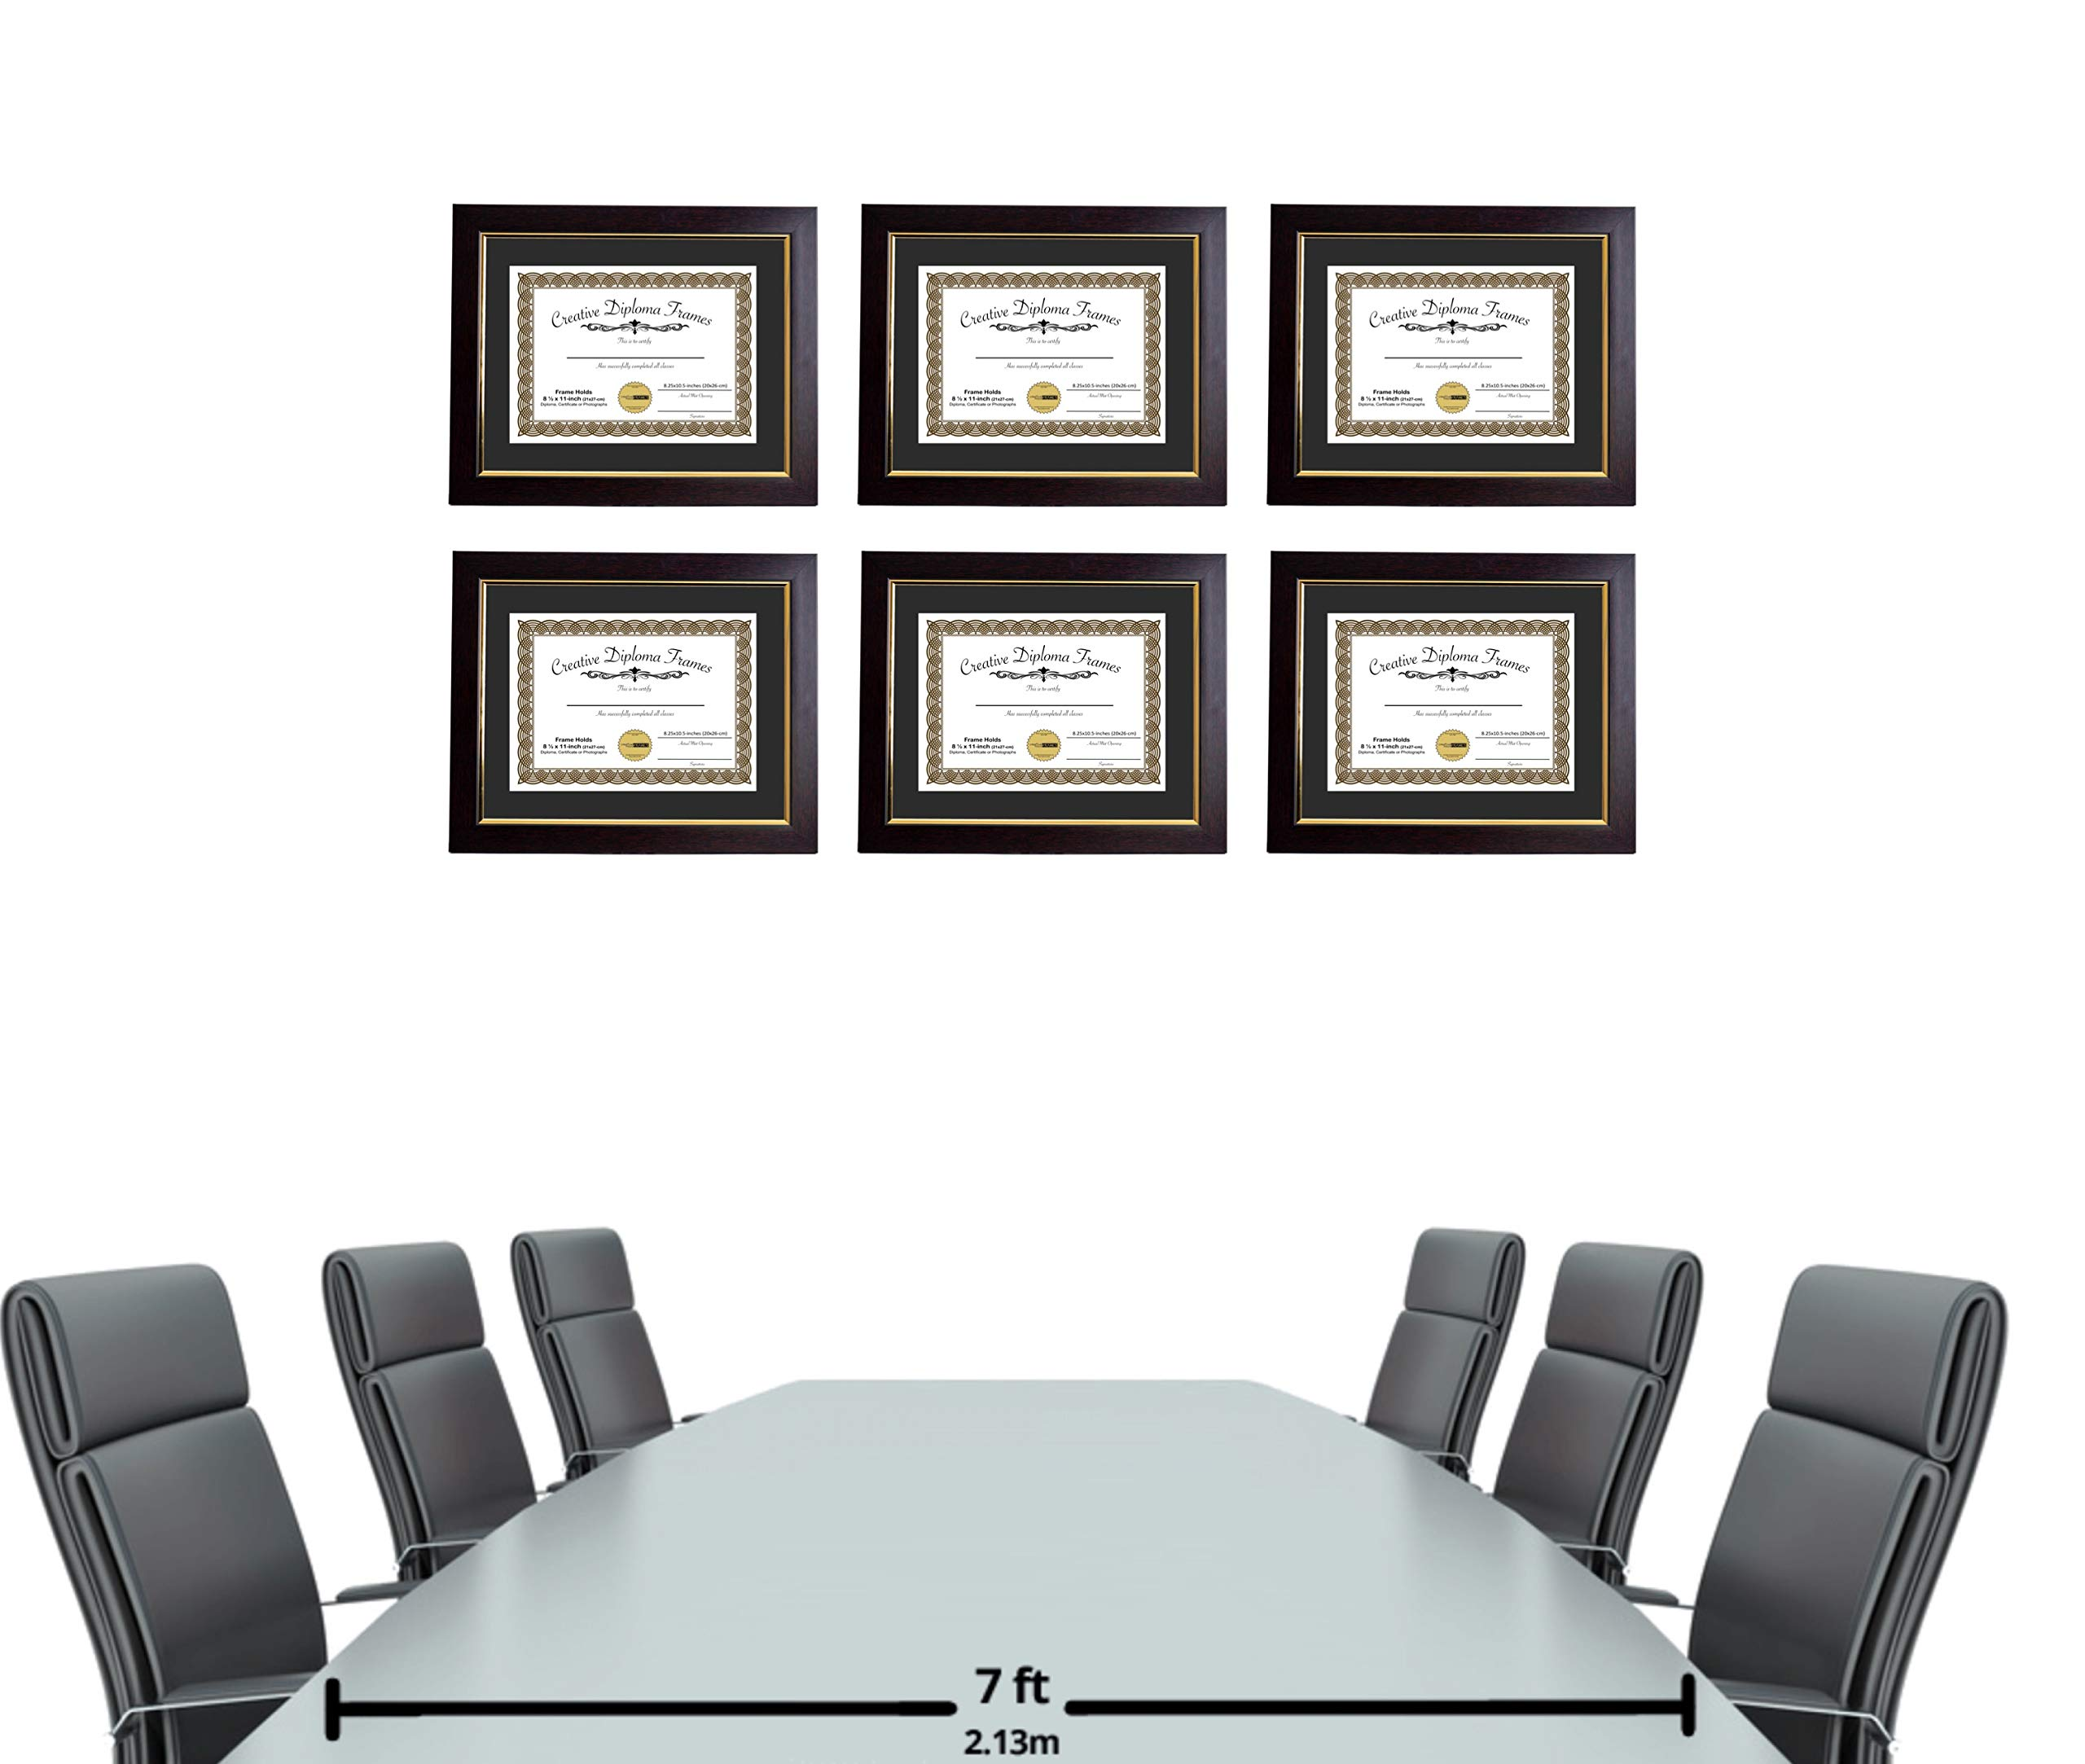 CreativePF [mhg024] 11x14-inch Matted Eco Mahogany Diploma Frame Gold Lip with Black/White Core Mat Holds 8.5x11-inch Media, with Installed Hangers (4-Pack) by Creative Picture Frames (Image #4)